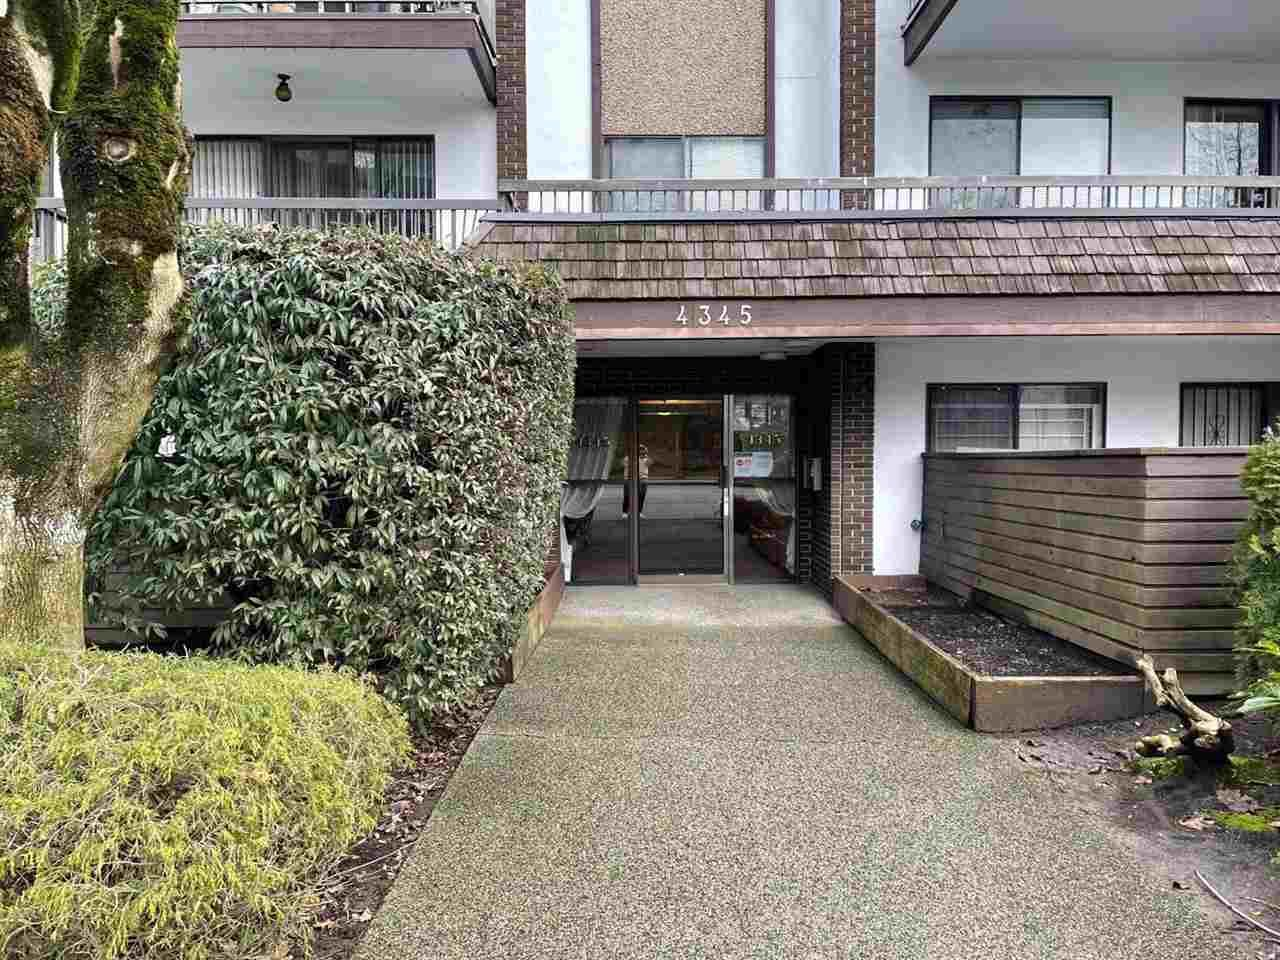 Main Photo: 107 4345 GRANGE Street in Burnaby: Central Park BS Condo for sale (Burnaby South)  : MLS®# R2540911